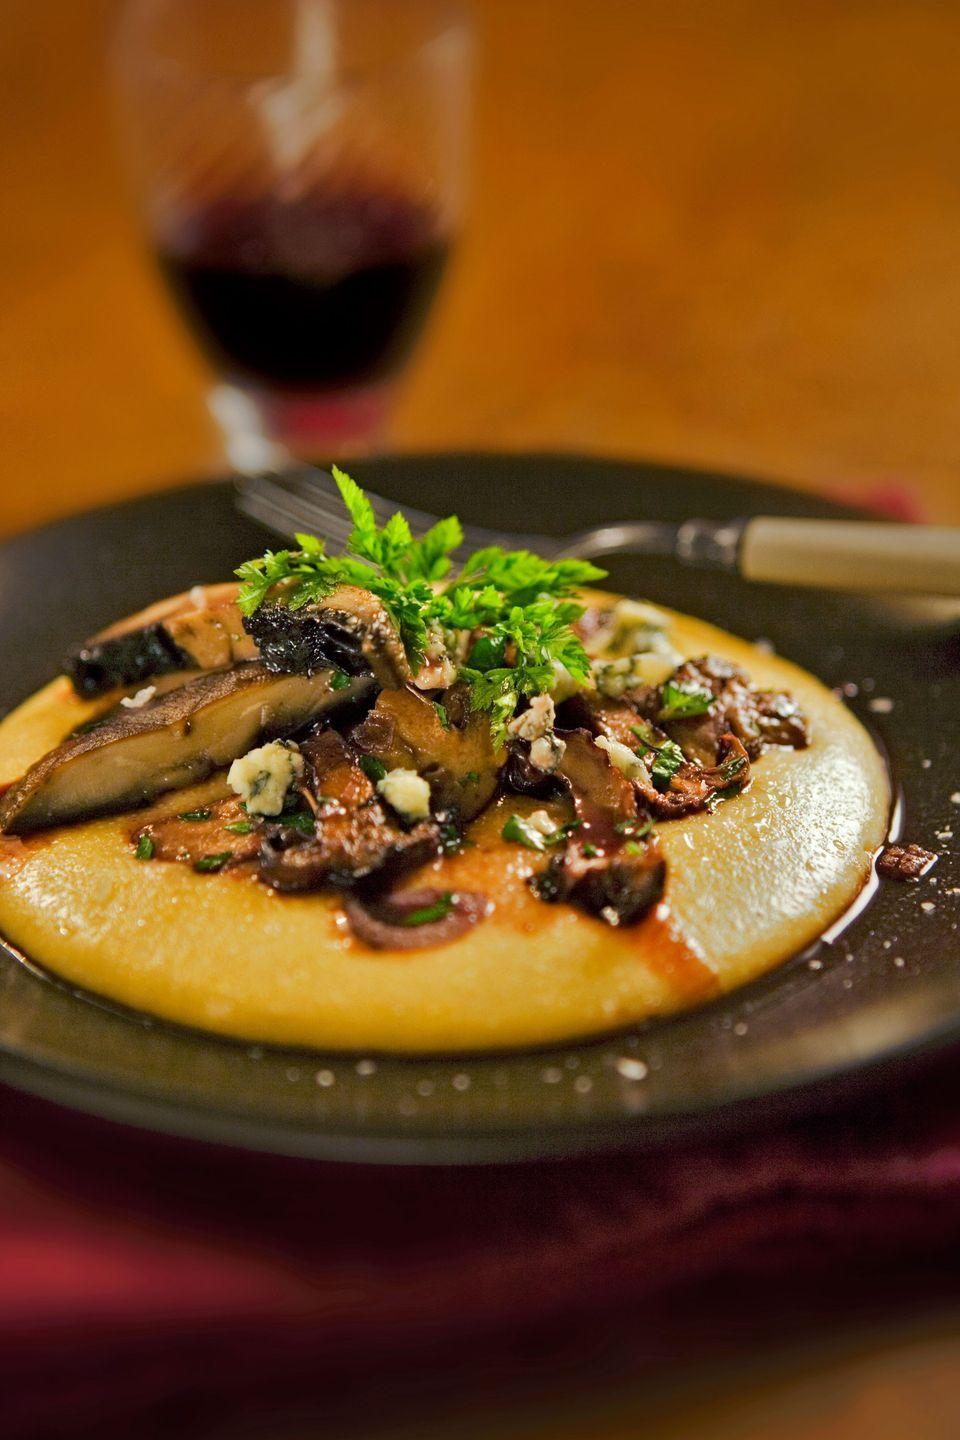 "A variation on our basic Polenta recipe, this dish pairs Madeira wine-enhanced wild mushrooms with a blue cheese- and Parmesan-spiked polenta. <a href=""https://www.countryliving.com/food-drinks/recipes/a2375/creamy-polenta-mushrooms-recipe/"" rel=""nofollow noopener"" target=""_blank"" data-ylk=""slk:Get the recipe."" class=""link rapid-noclick-resp""><strong>Get the recipe.</strong></a>"